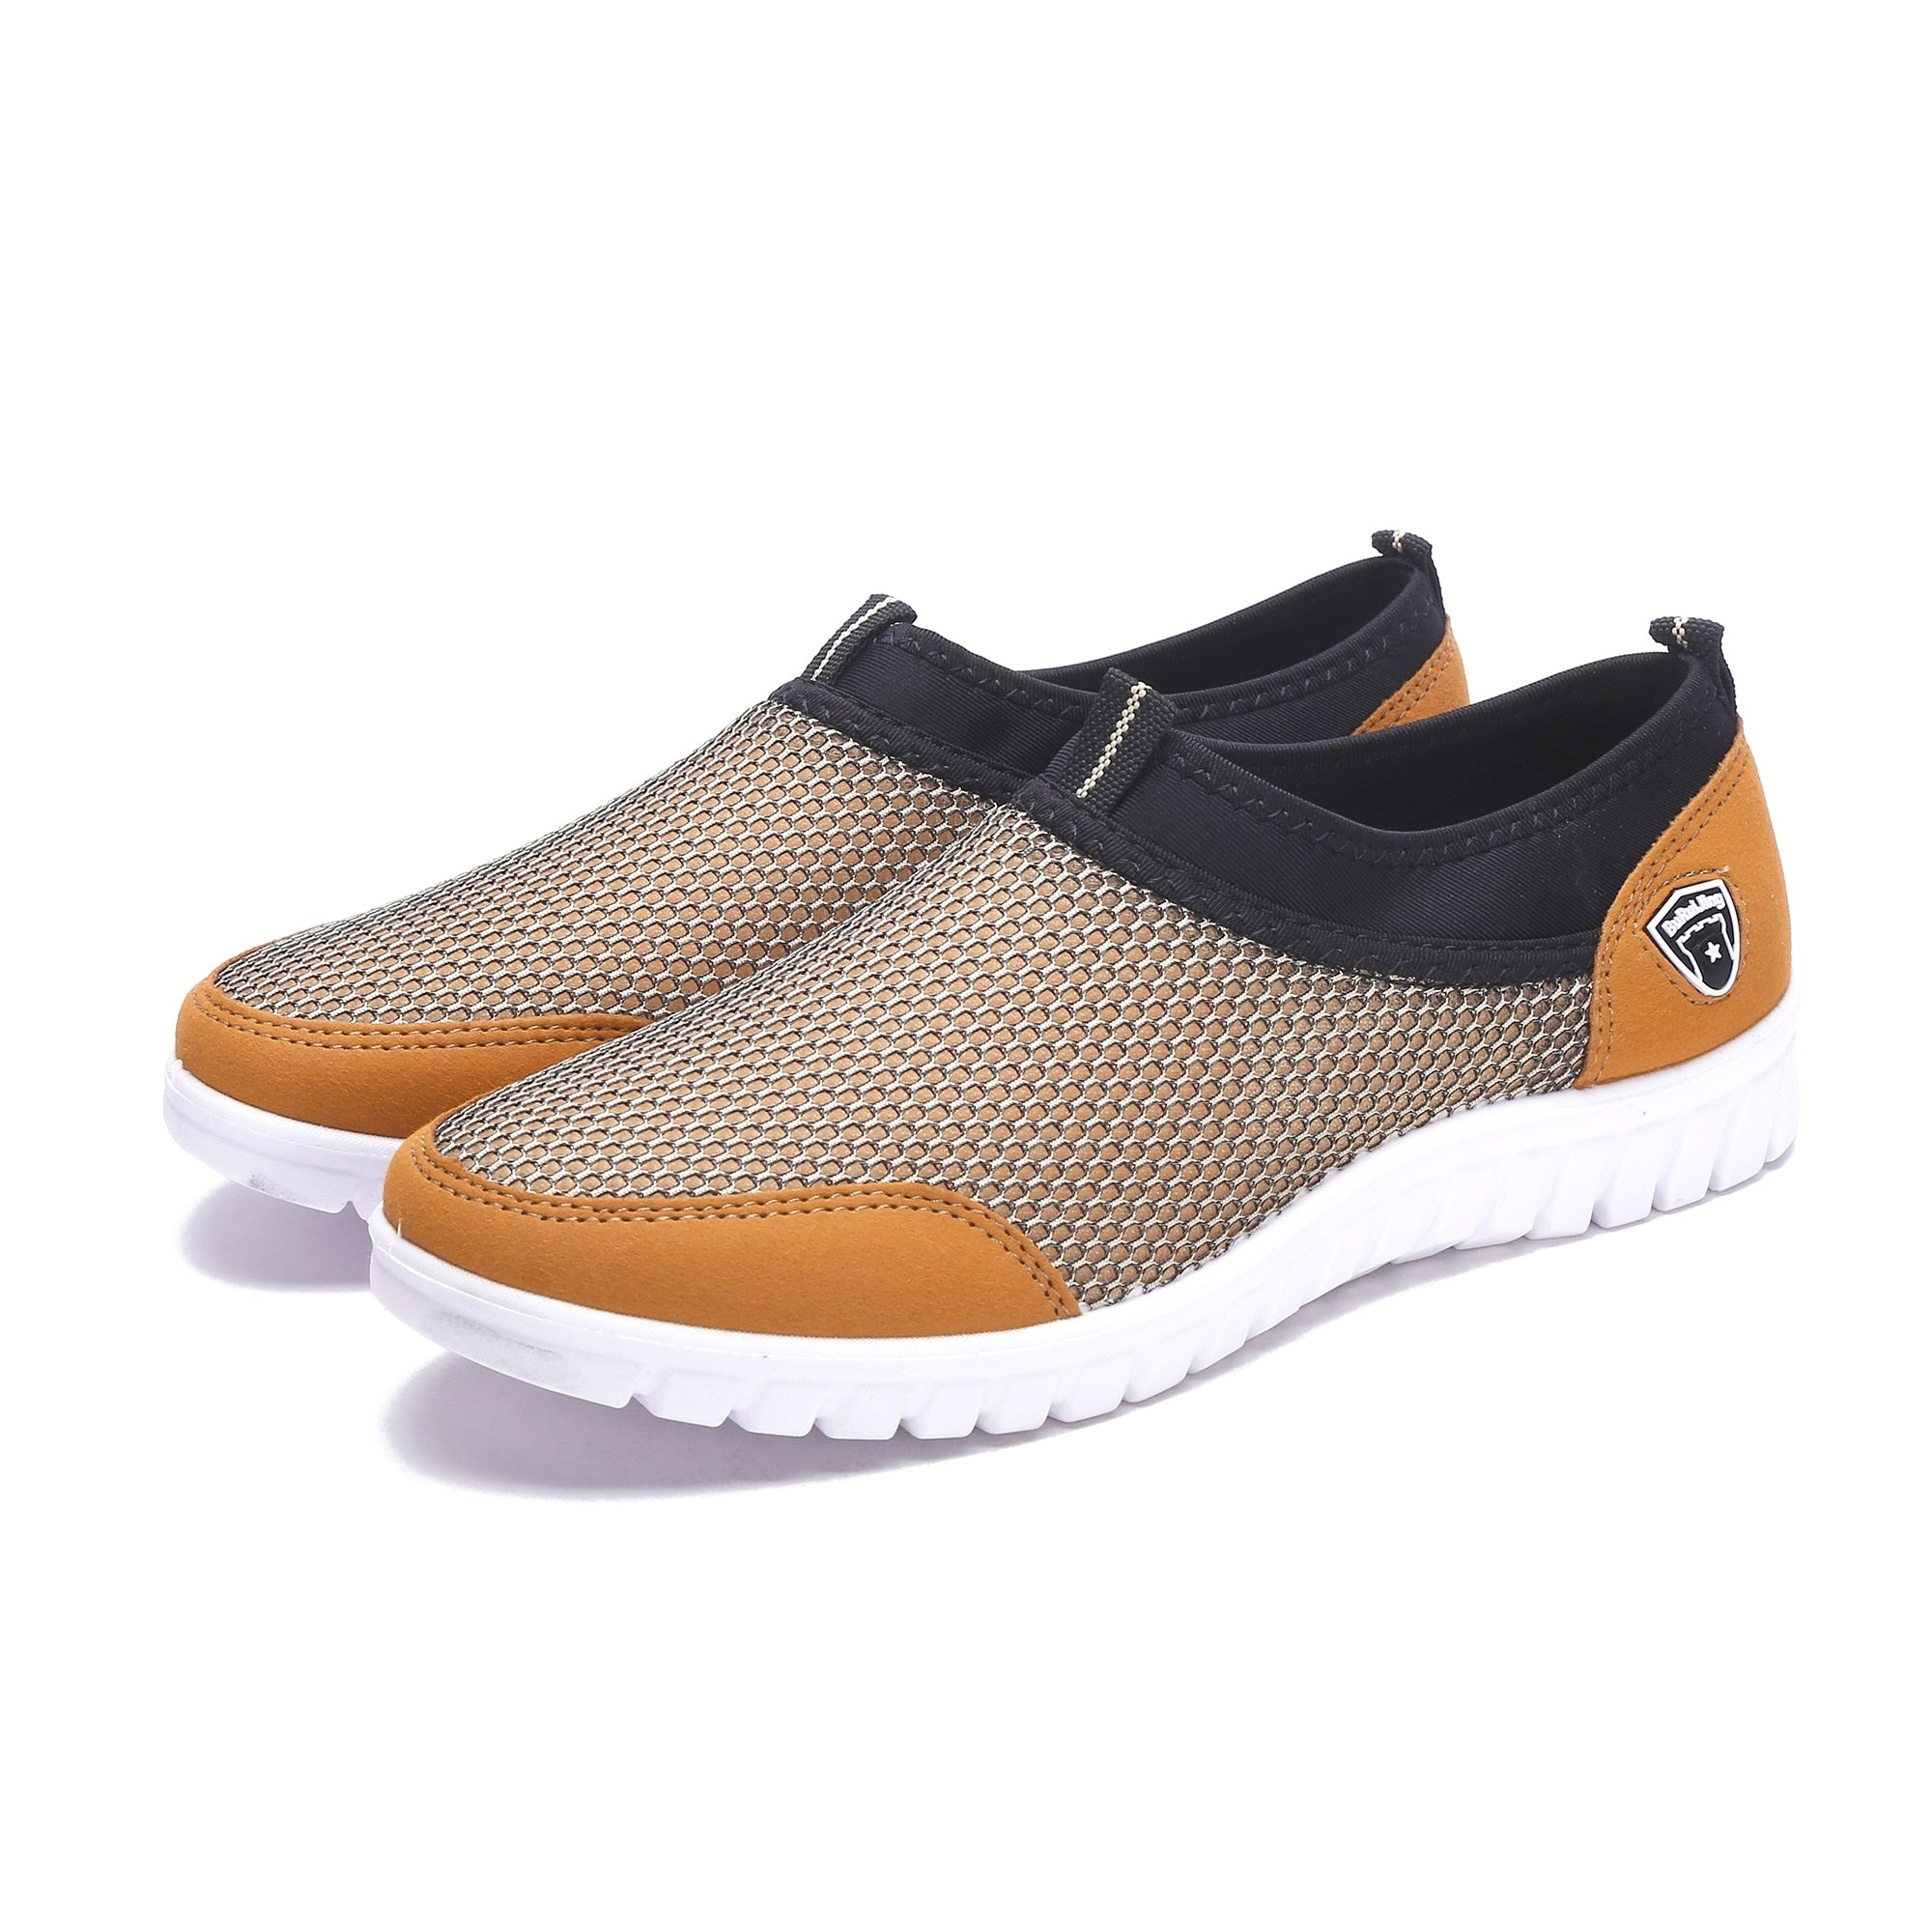 2019 Men's Breathable Casual Shoes